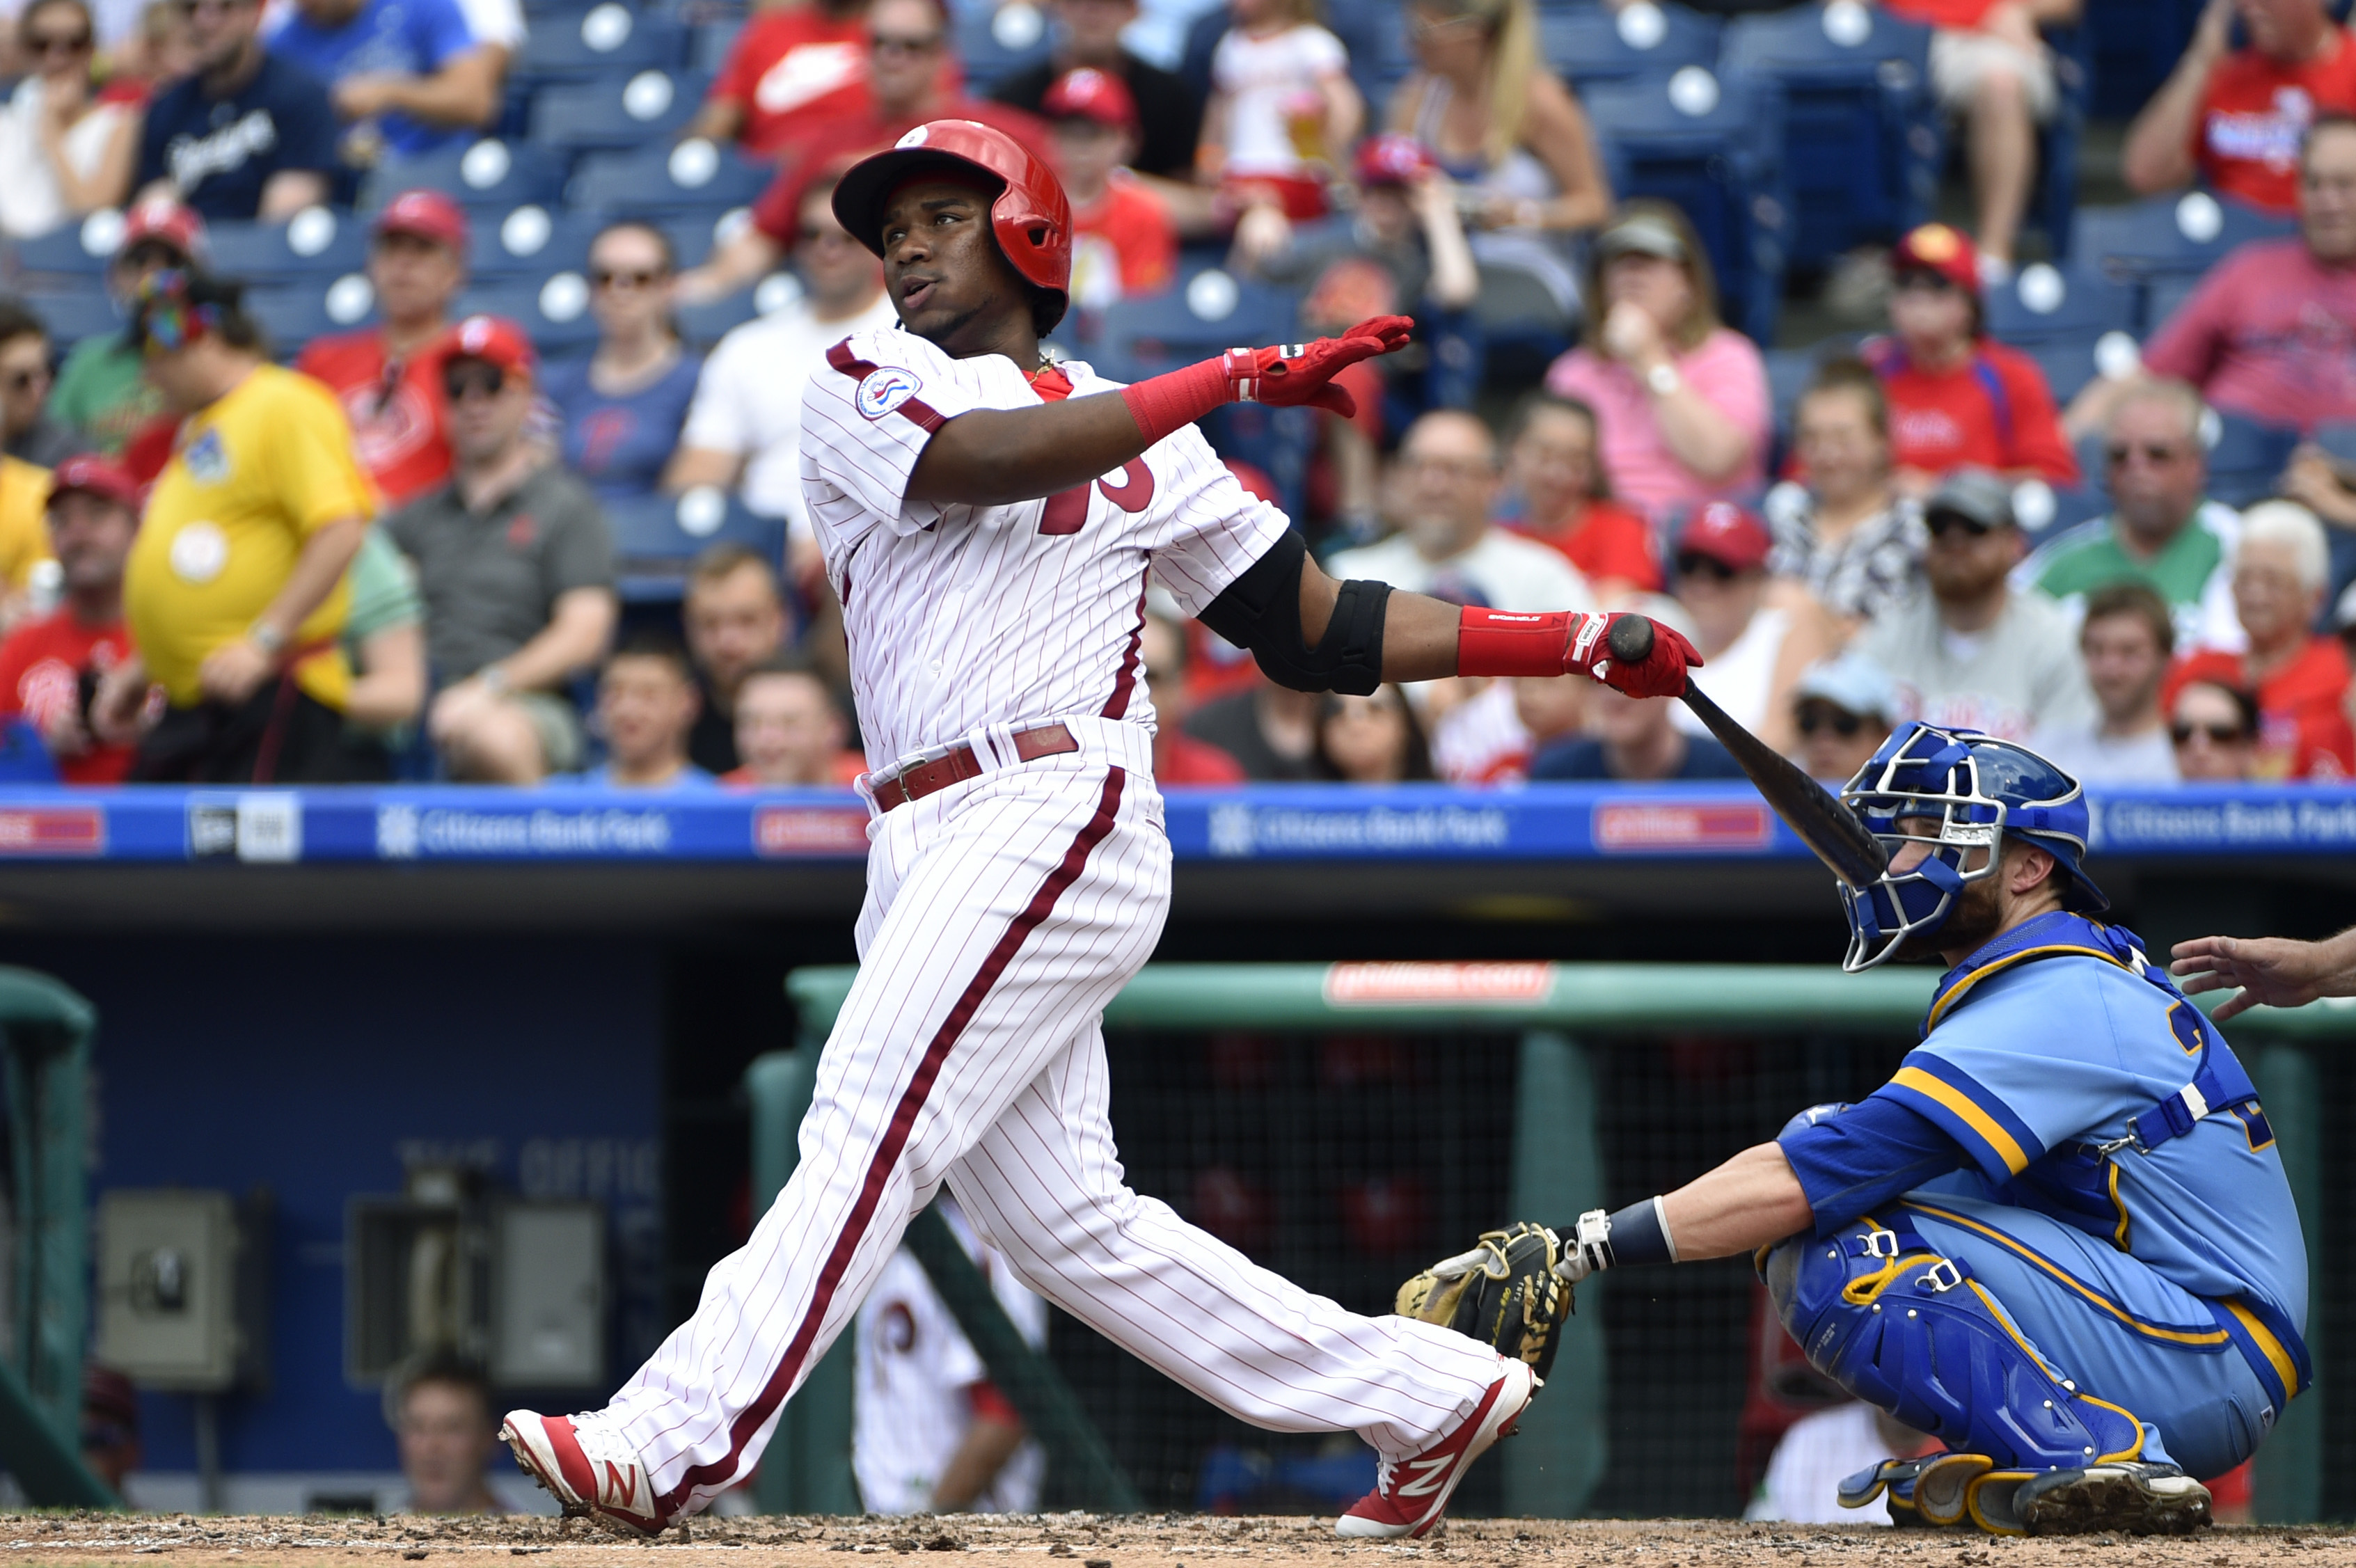 Philadelphia Phillies' Maikel Franco, center, hits a home run off Milwaukee Brewers starting pitcher Wily Peralta during the third inning of a baseball game, Sunday, June 5, 2016, in Philadelphia. (AP Photo/Derik Hamilton)